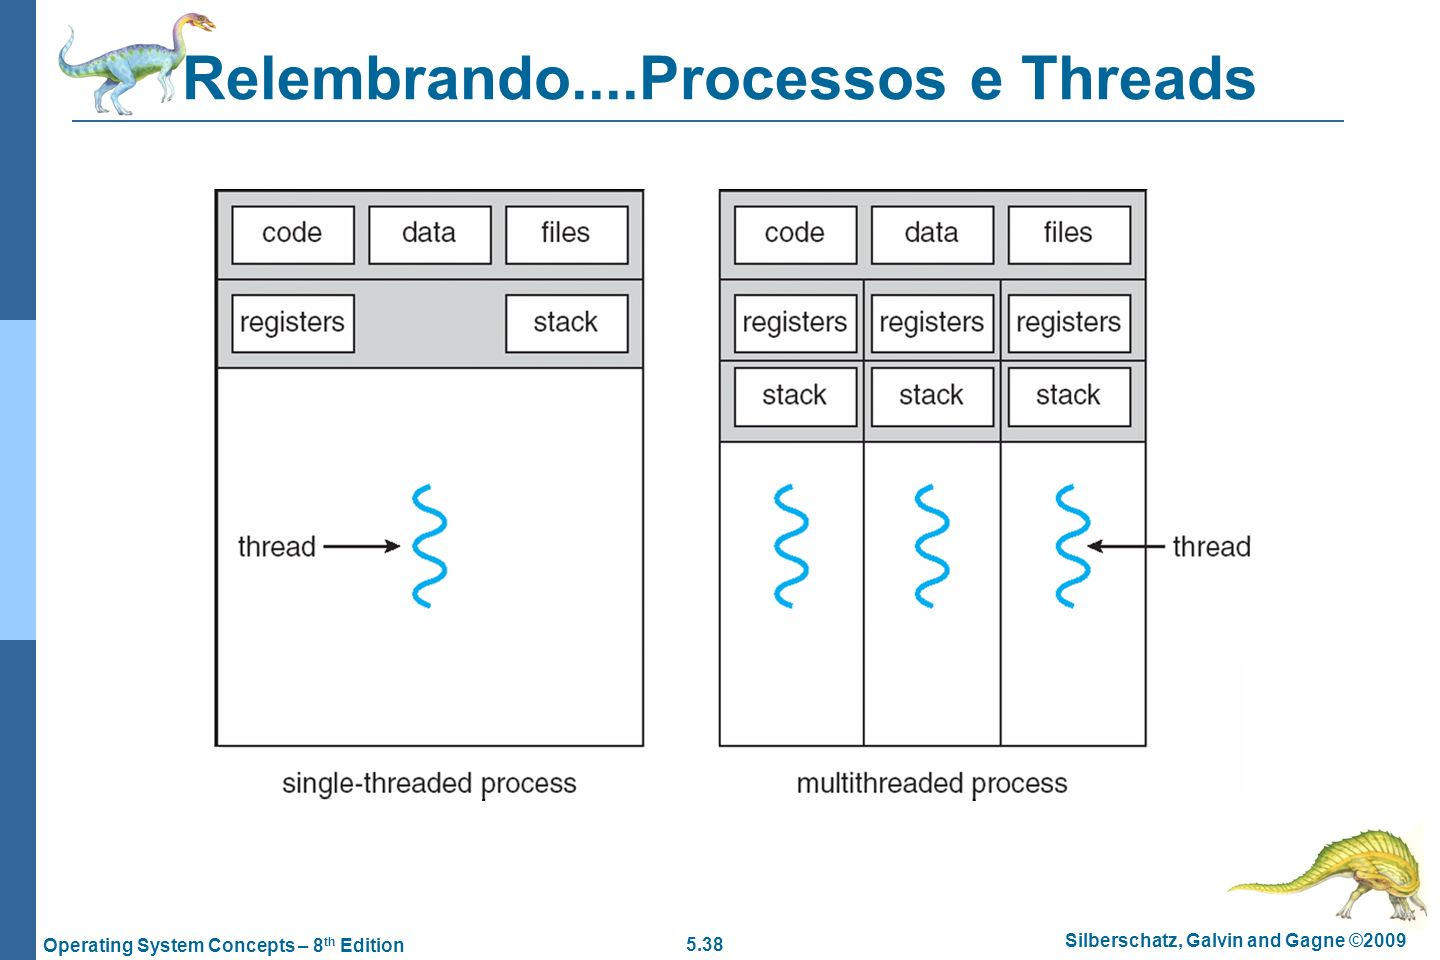 Relembrando....Processos e Threads